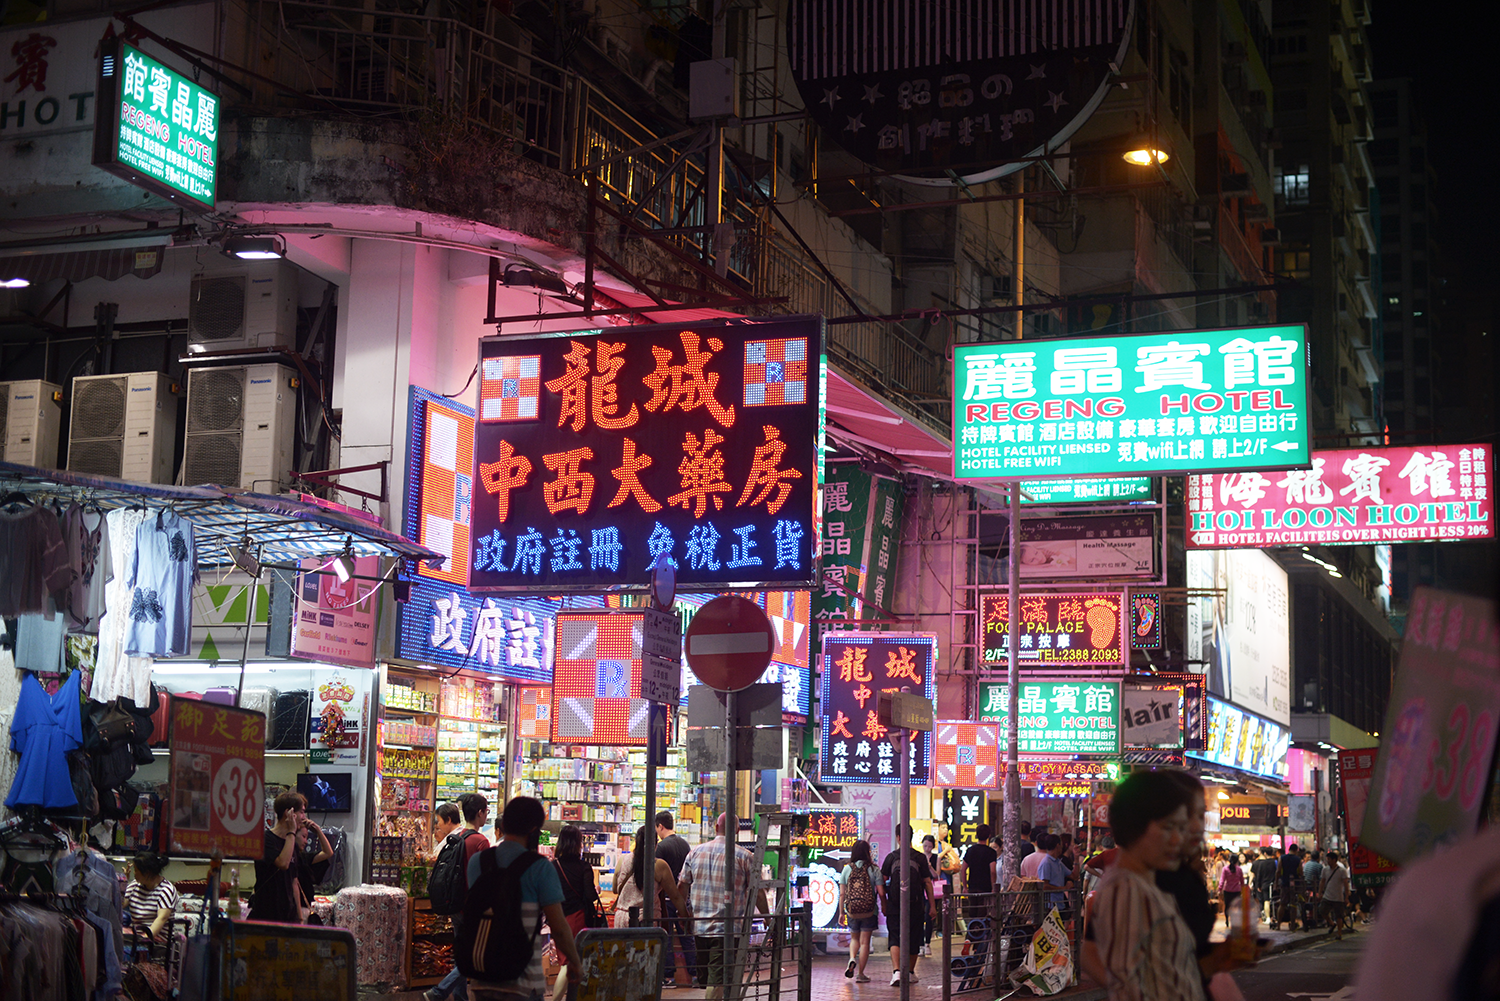 Hong Kong Neon Lights - Hong Kong, China | Night / FOREVERVANNY.com